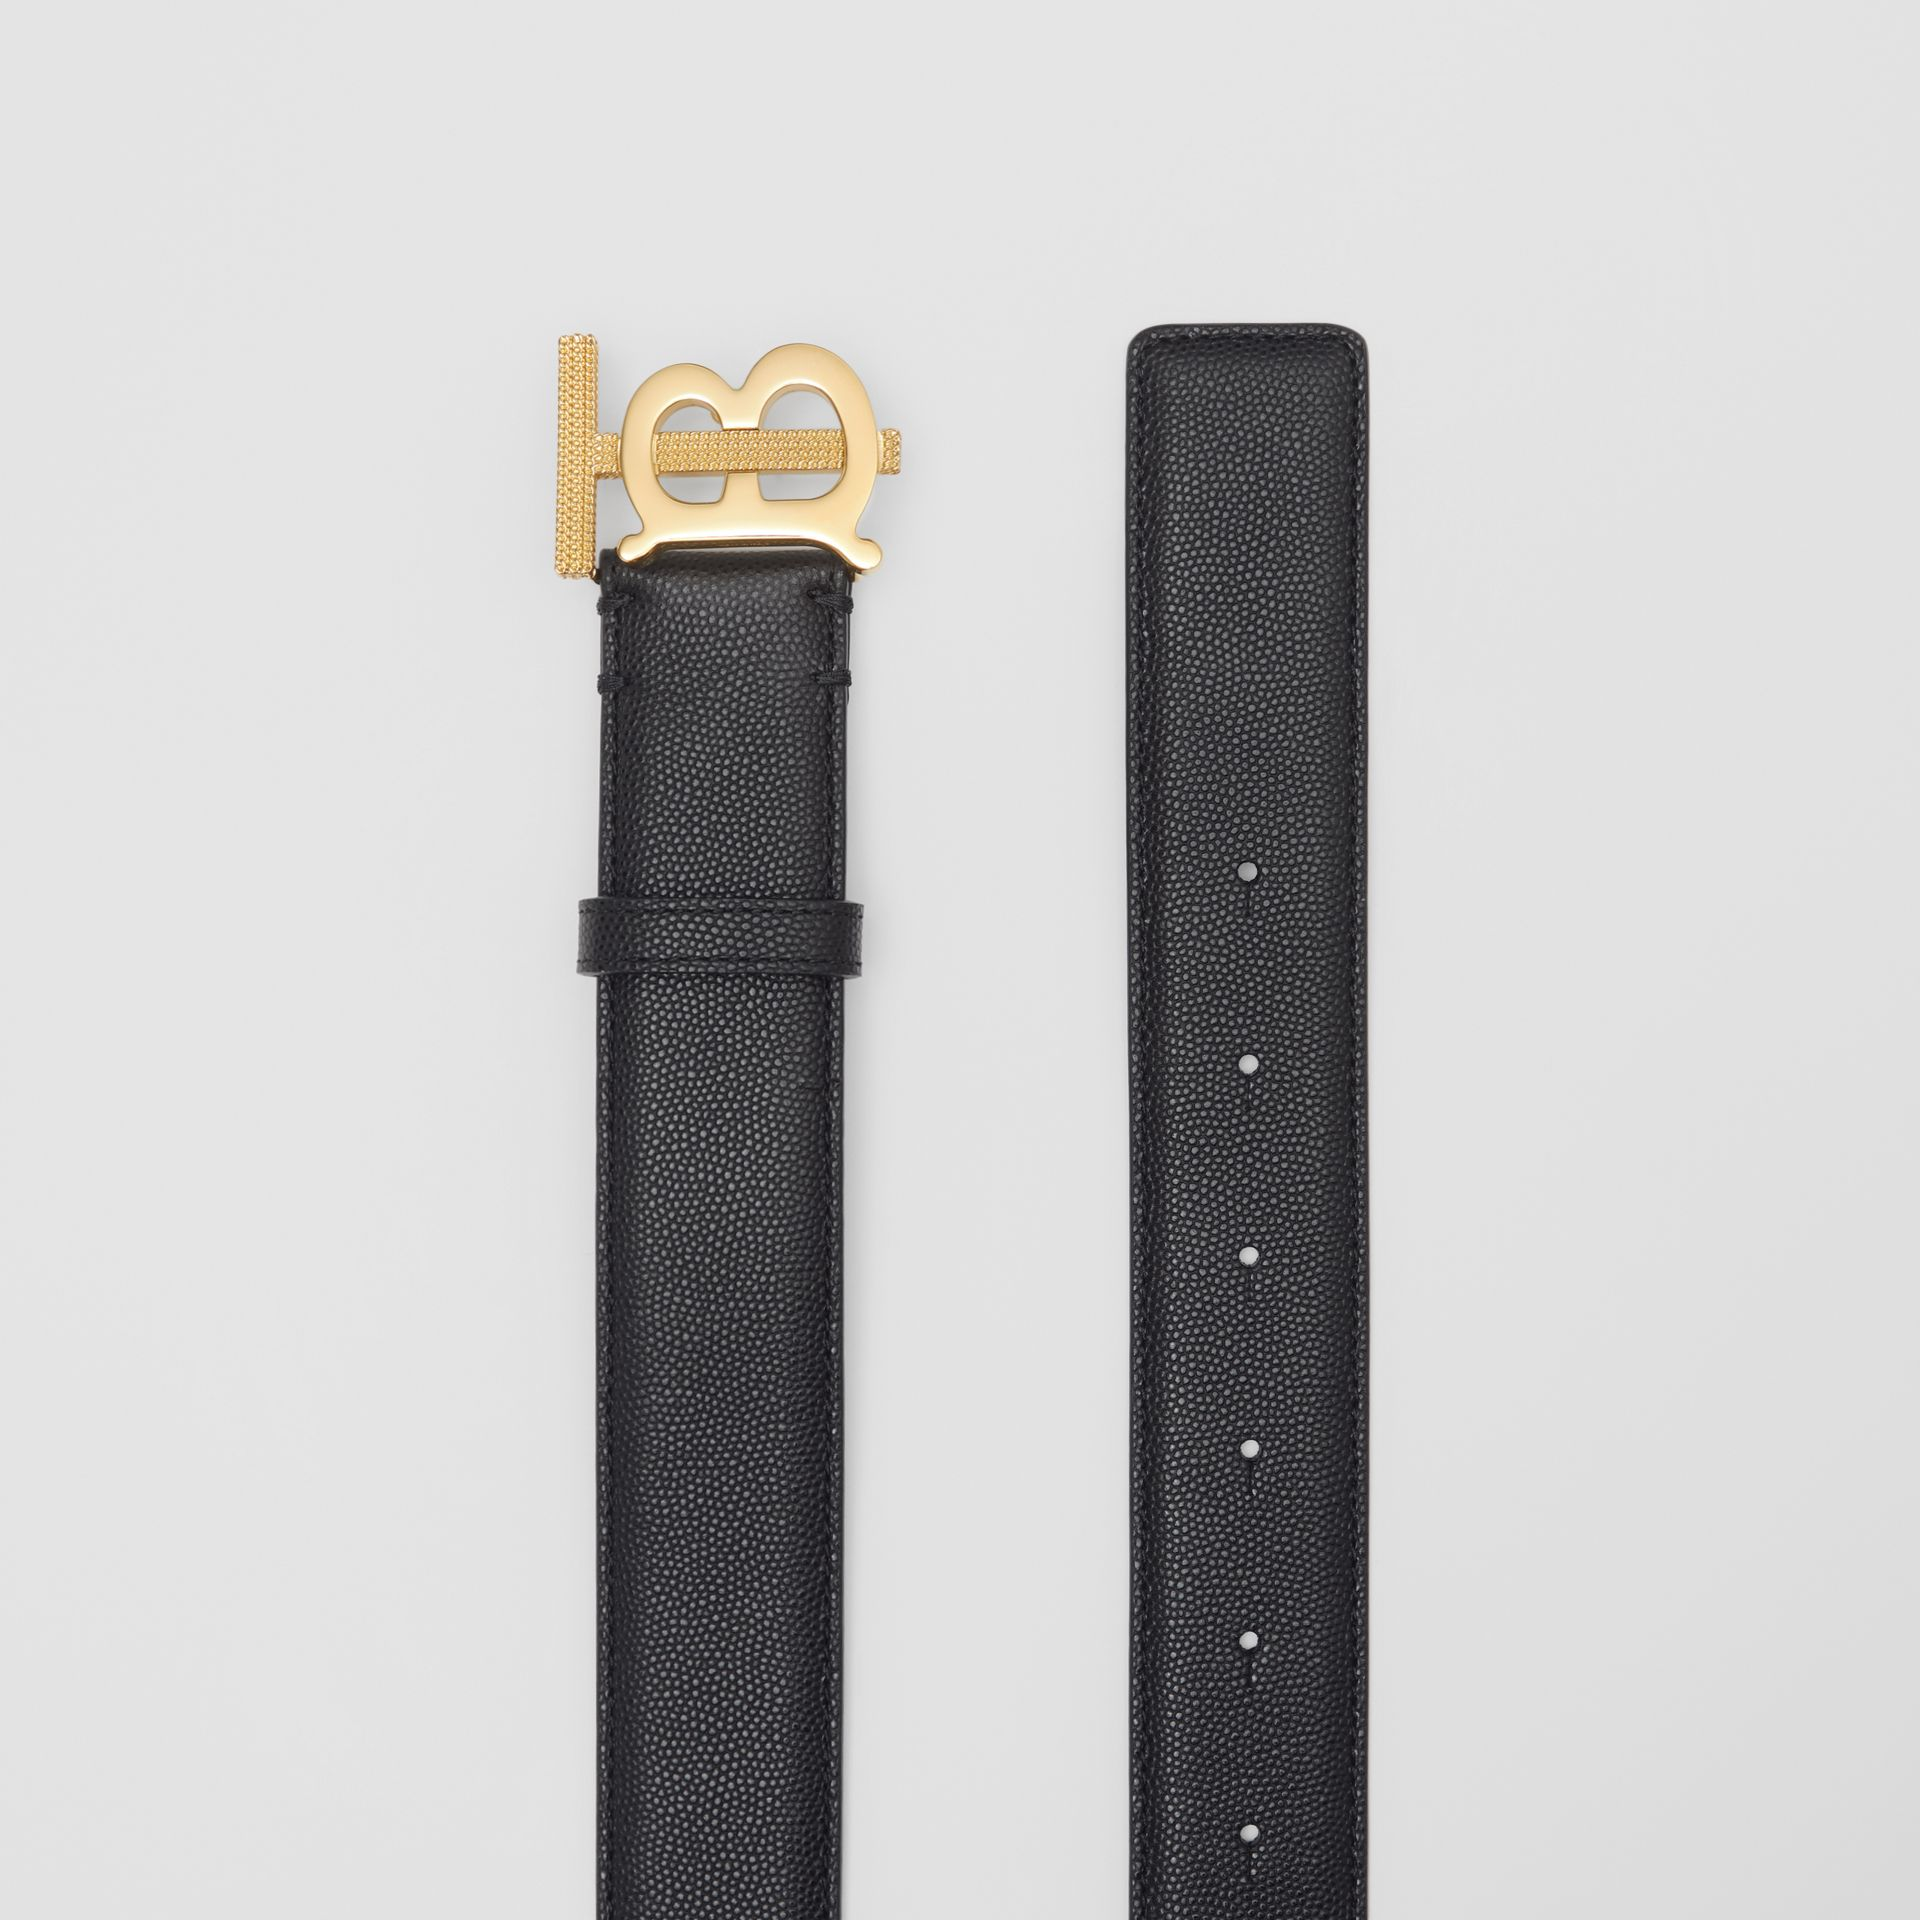 Monogram Motif Grainy Leather Belt in Black/light Gold - Women | Burberry - gallery image 4